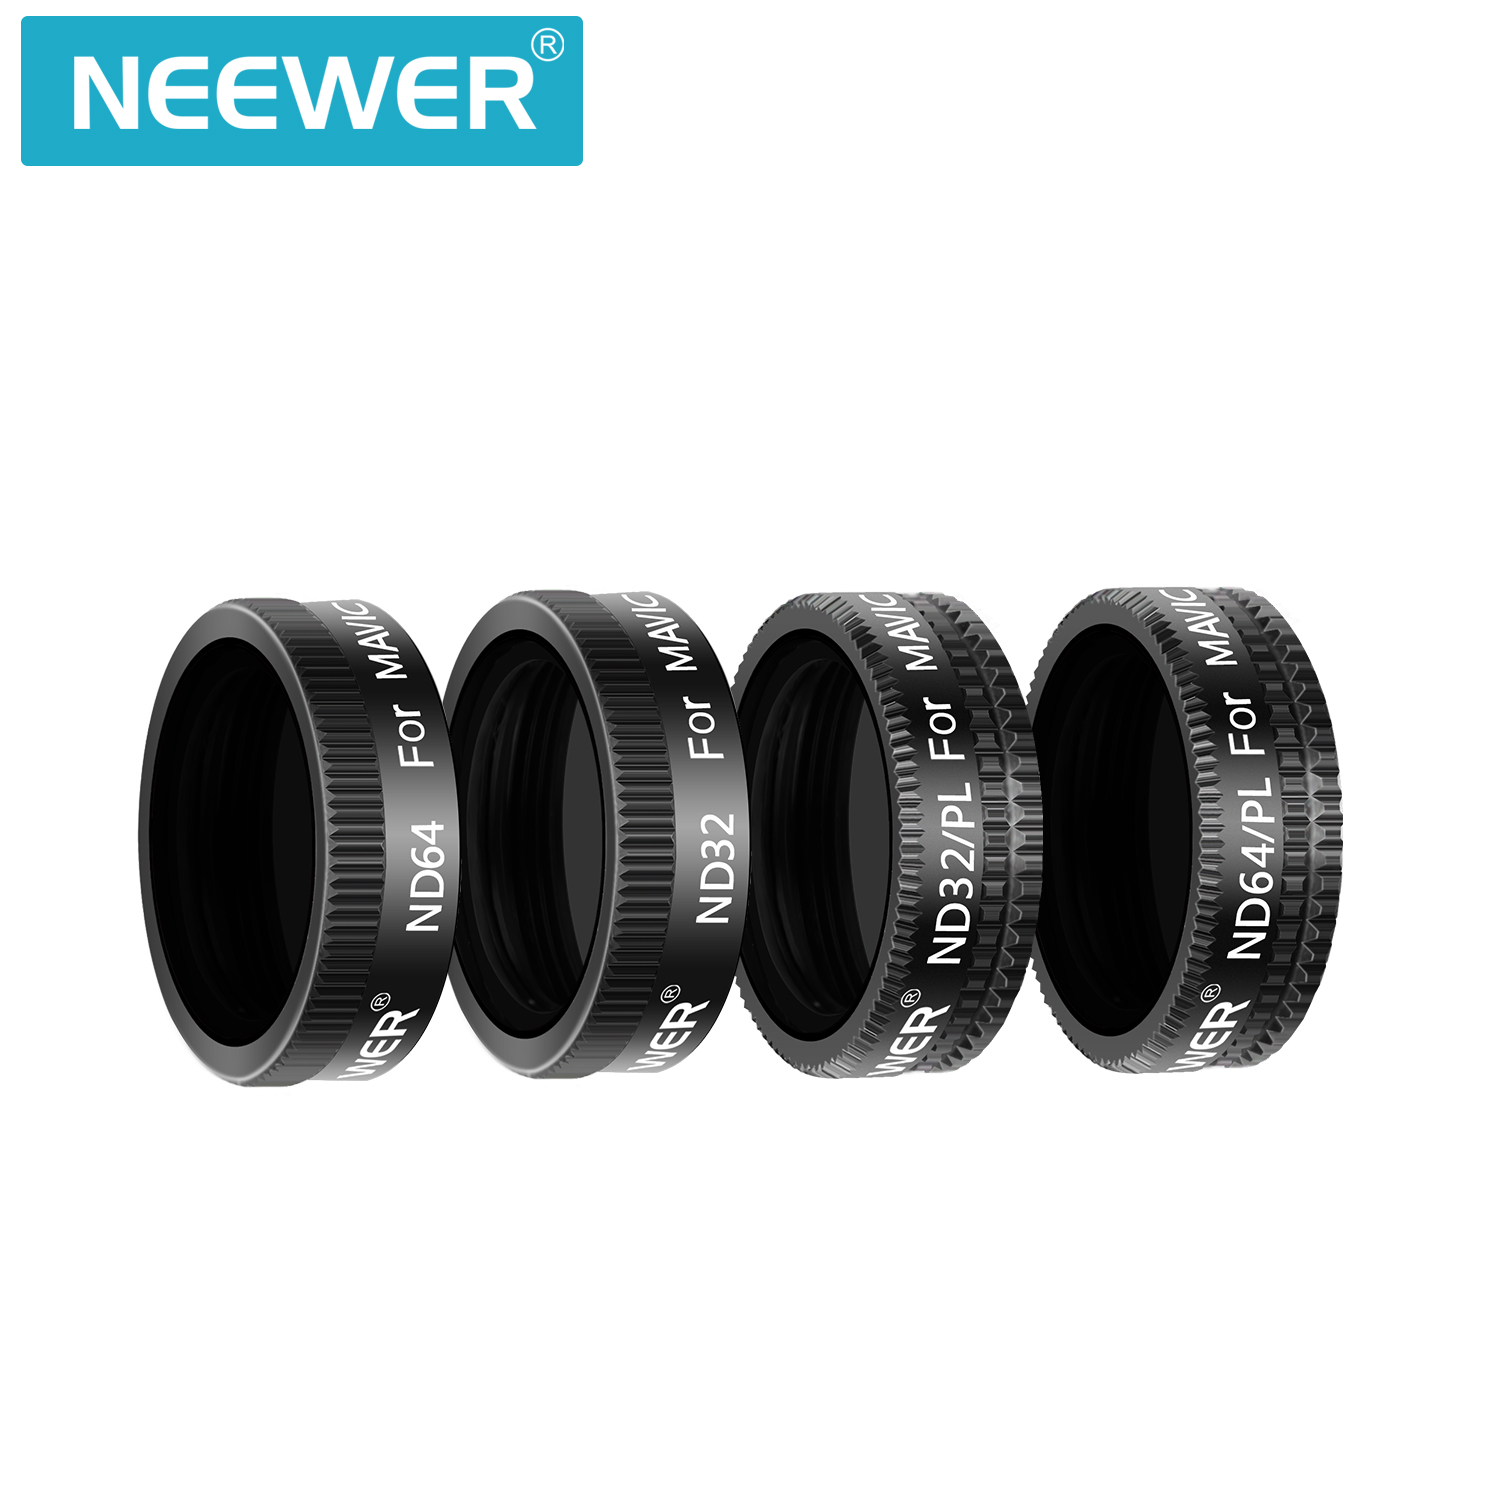 Includes Multi-Coated ND4 ND8 ND16 CPL ND32//PL ND64//PL Filters with Carrying Box for Outdoor Photography Black Neewer Magnetic Filter Set for DJI Osmo Pocket Camera Lens